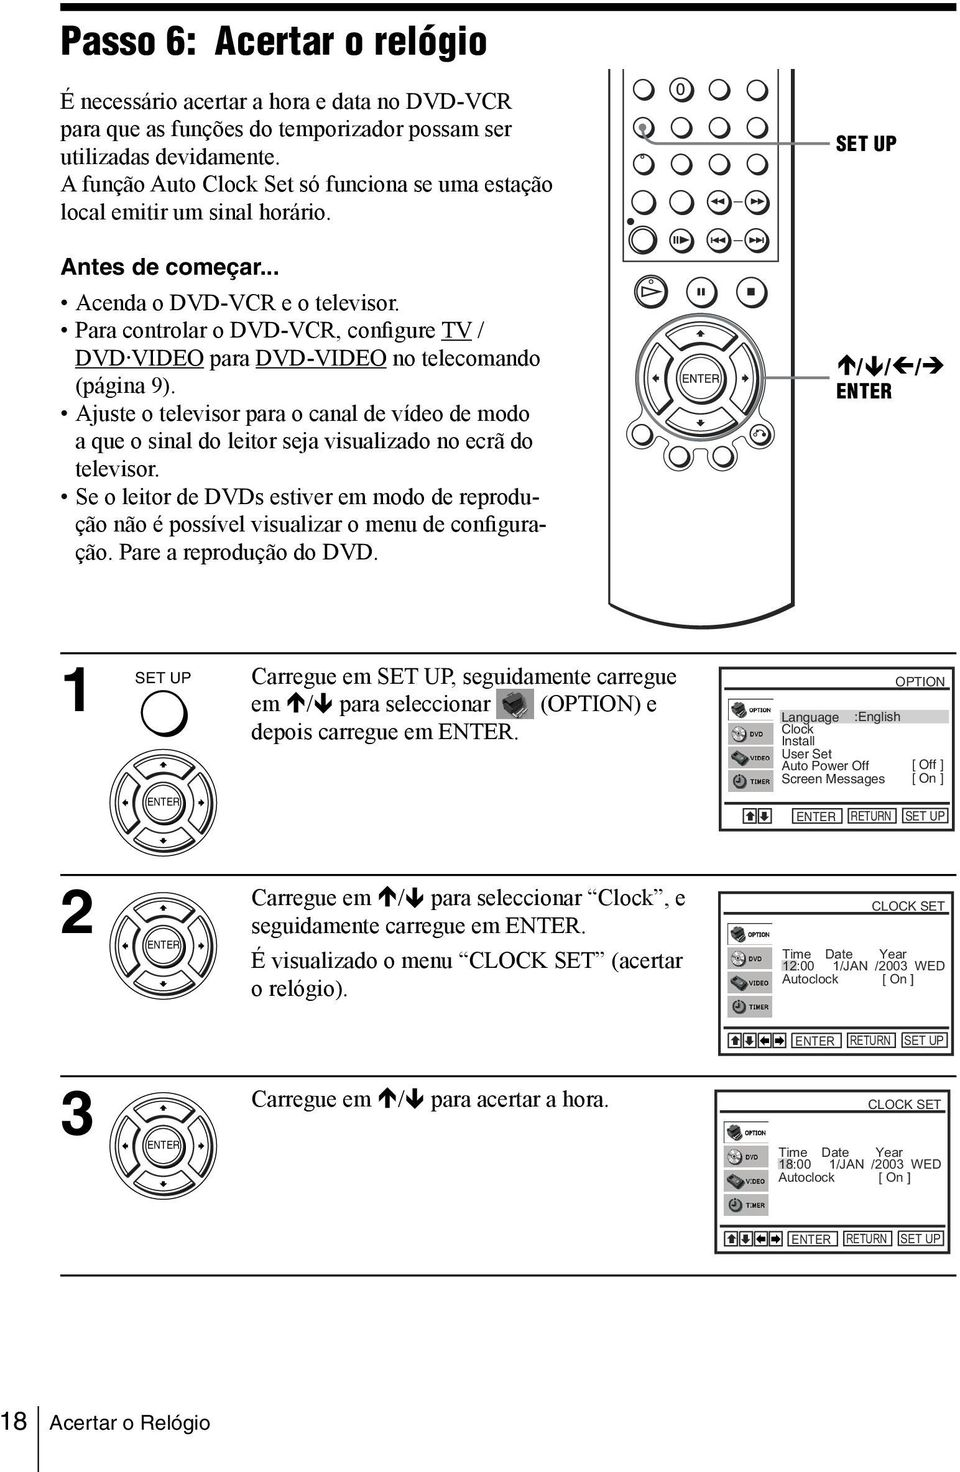 Para controlar o DVD-VCR, configure TV / DVD VIDEO para DVD-VIDEO no telecomando (página 9).